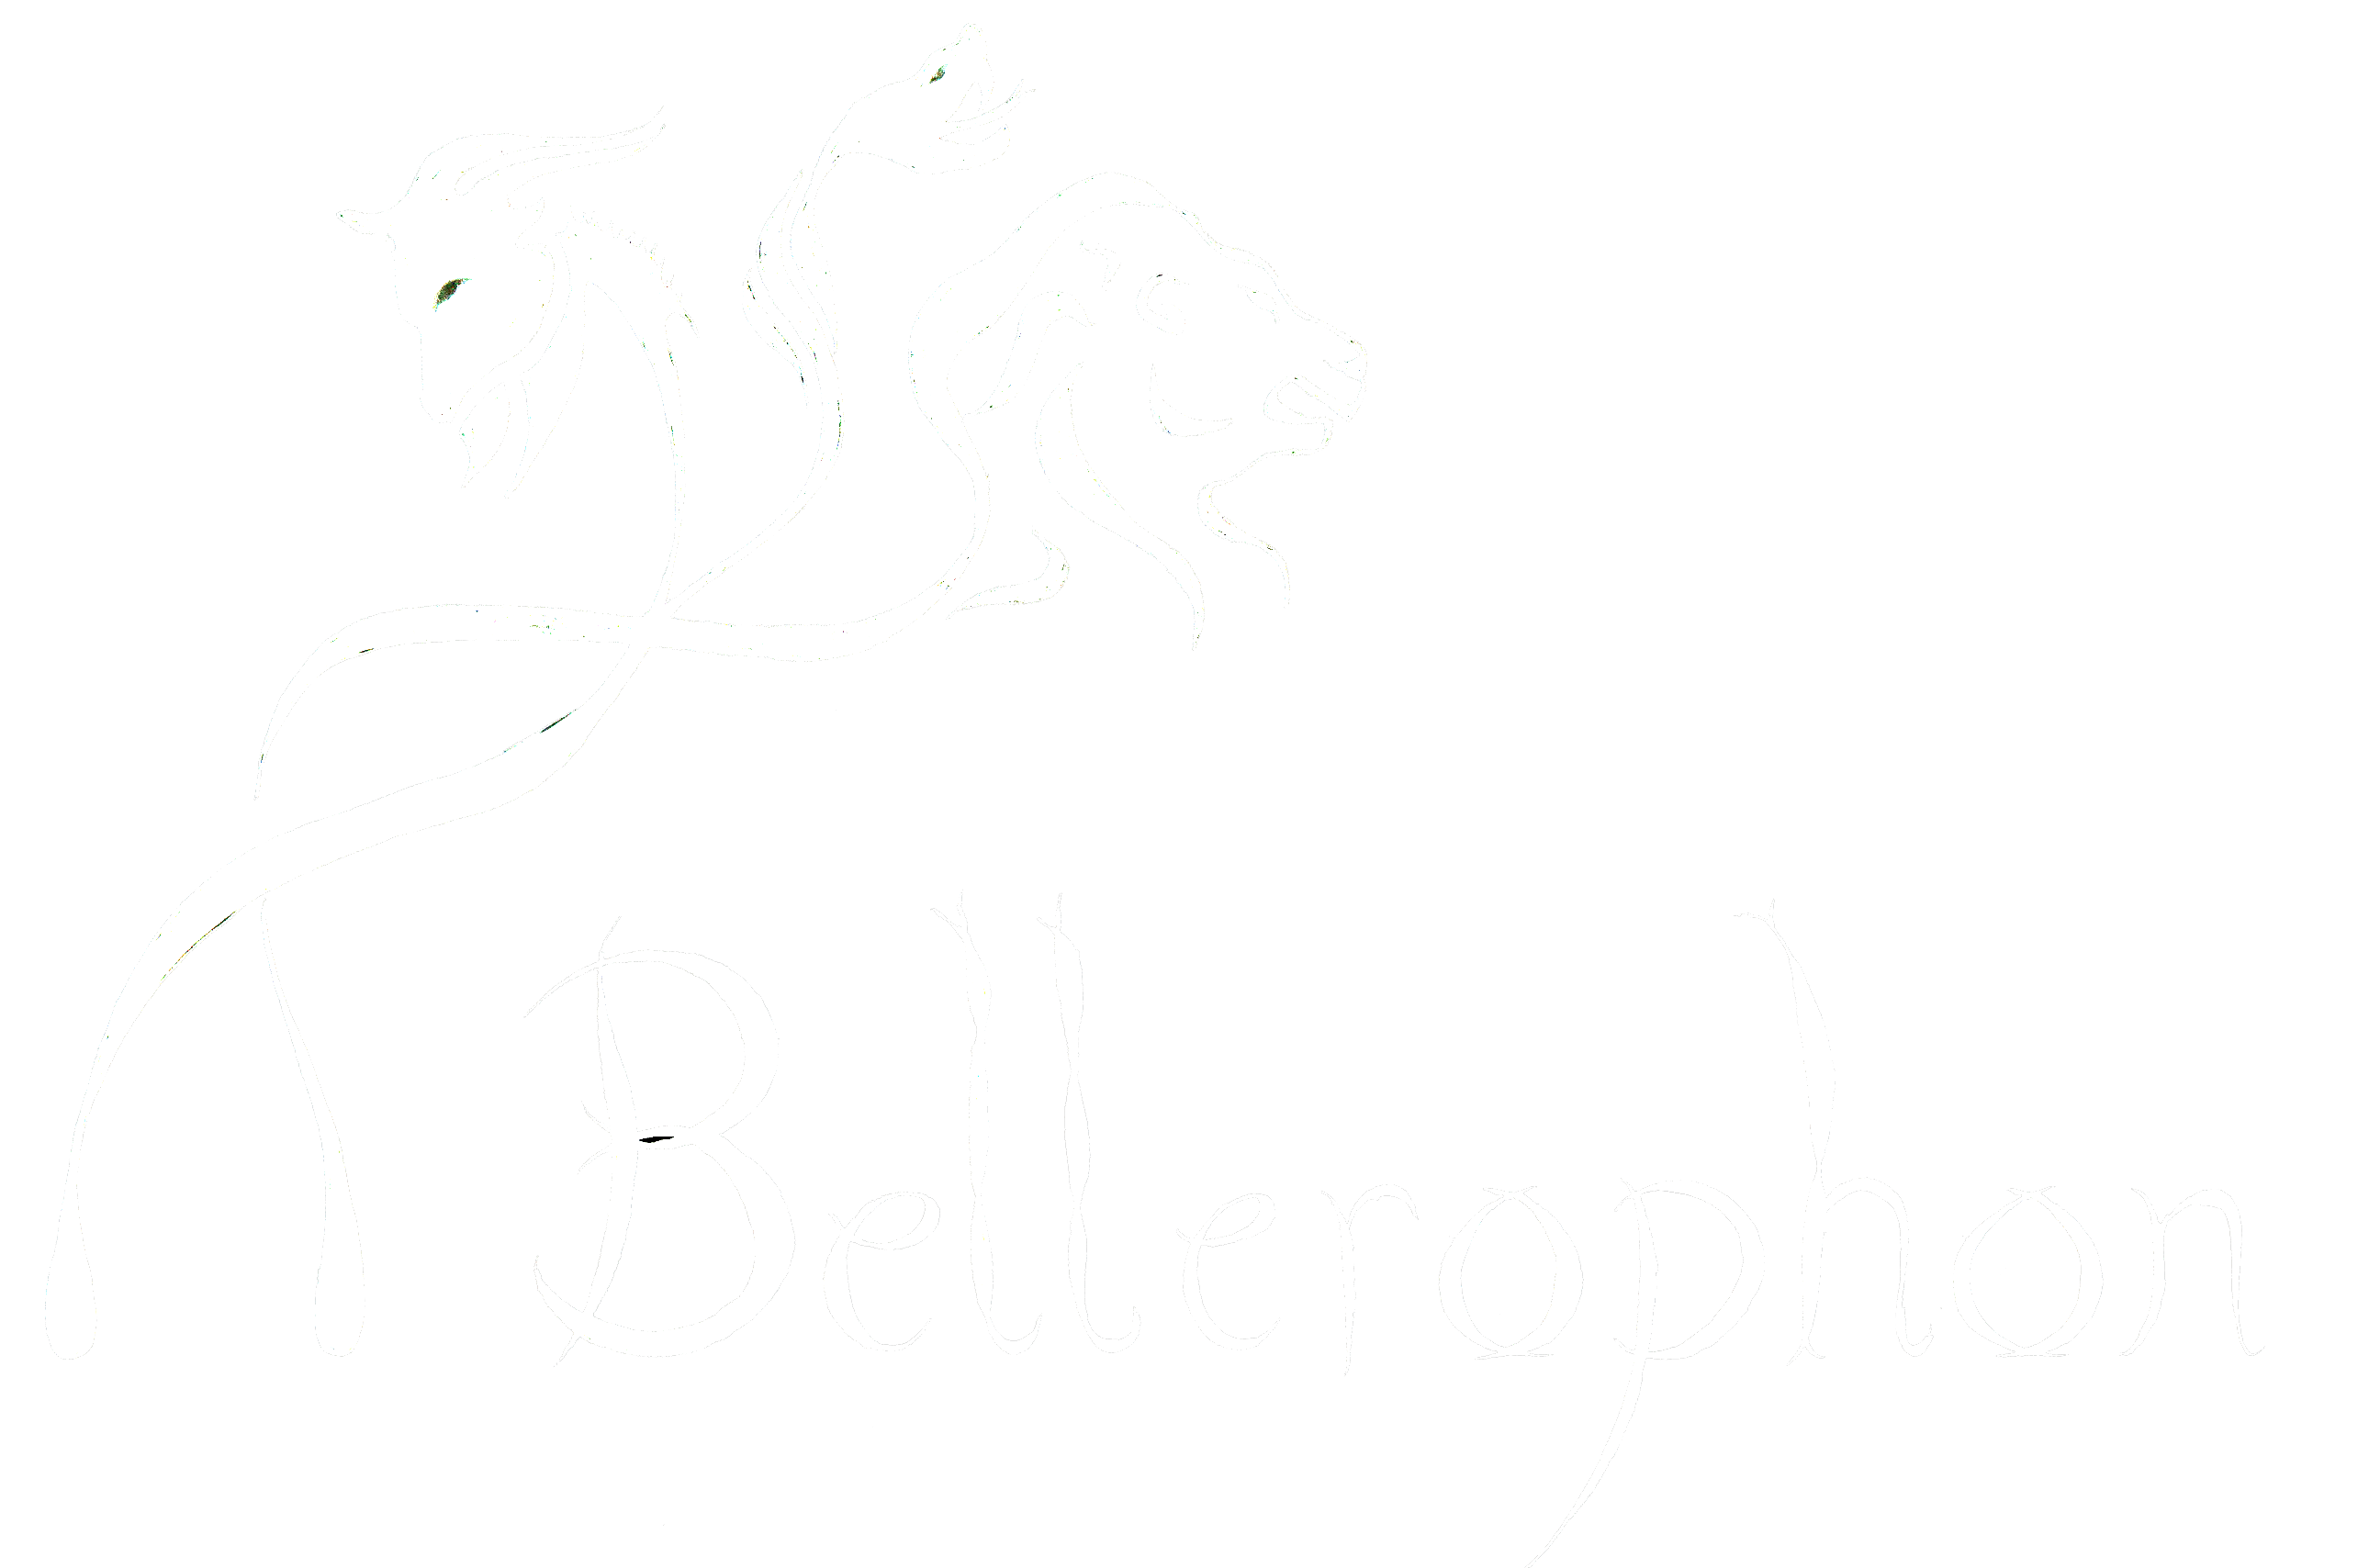 http://openwetware.org/images/e/e4/Bellerophon.png